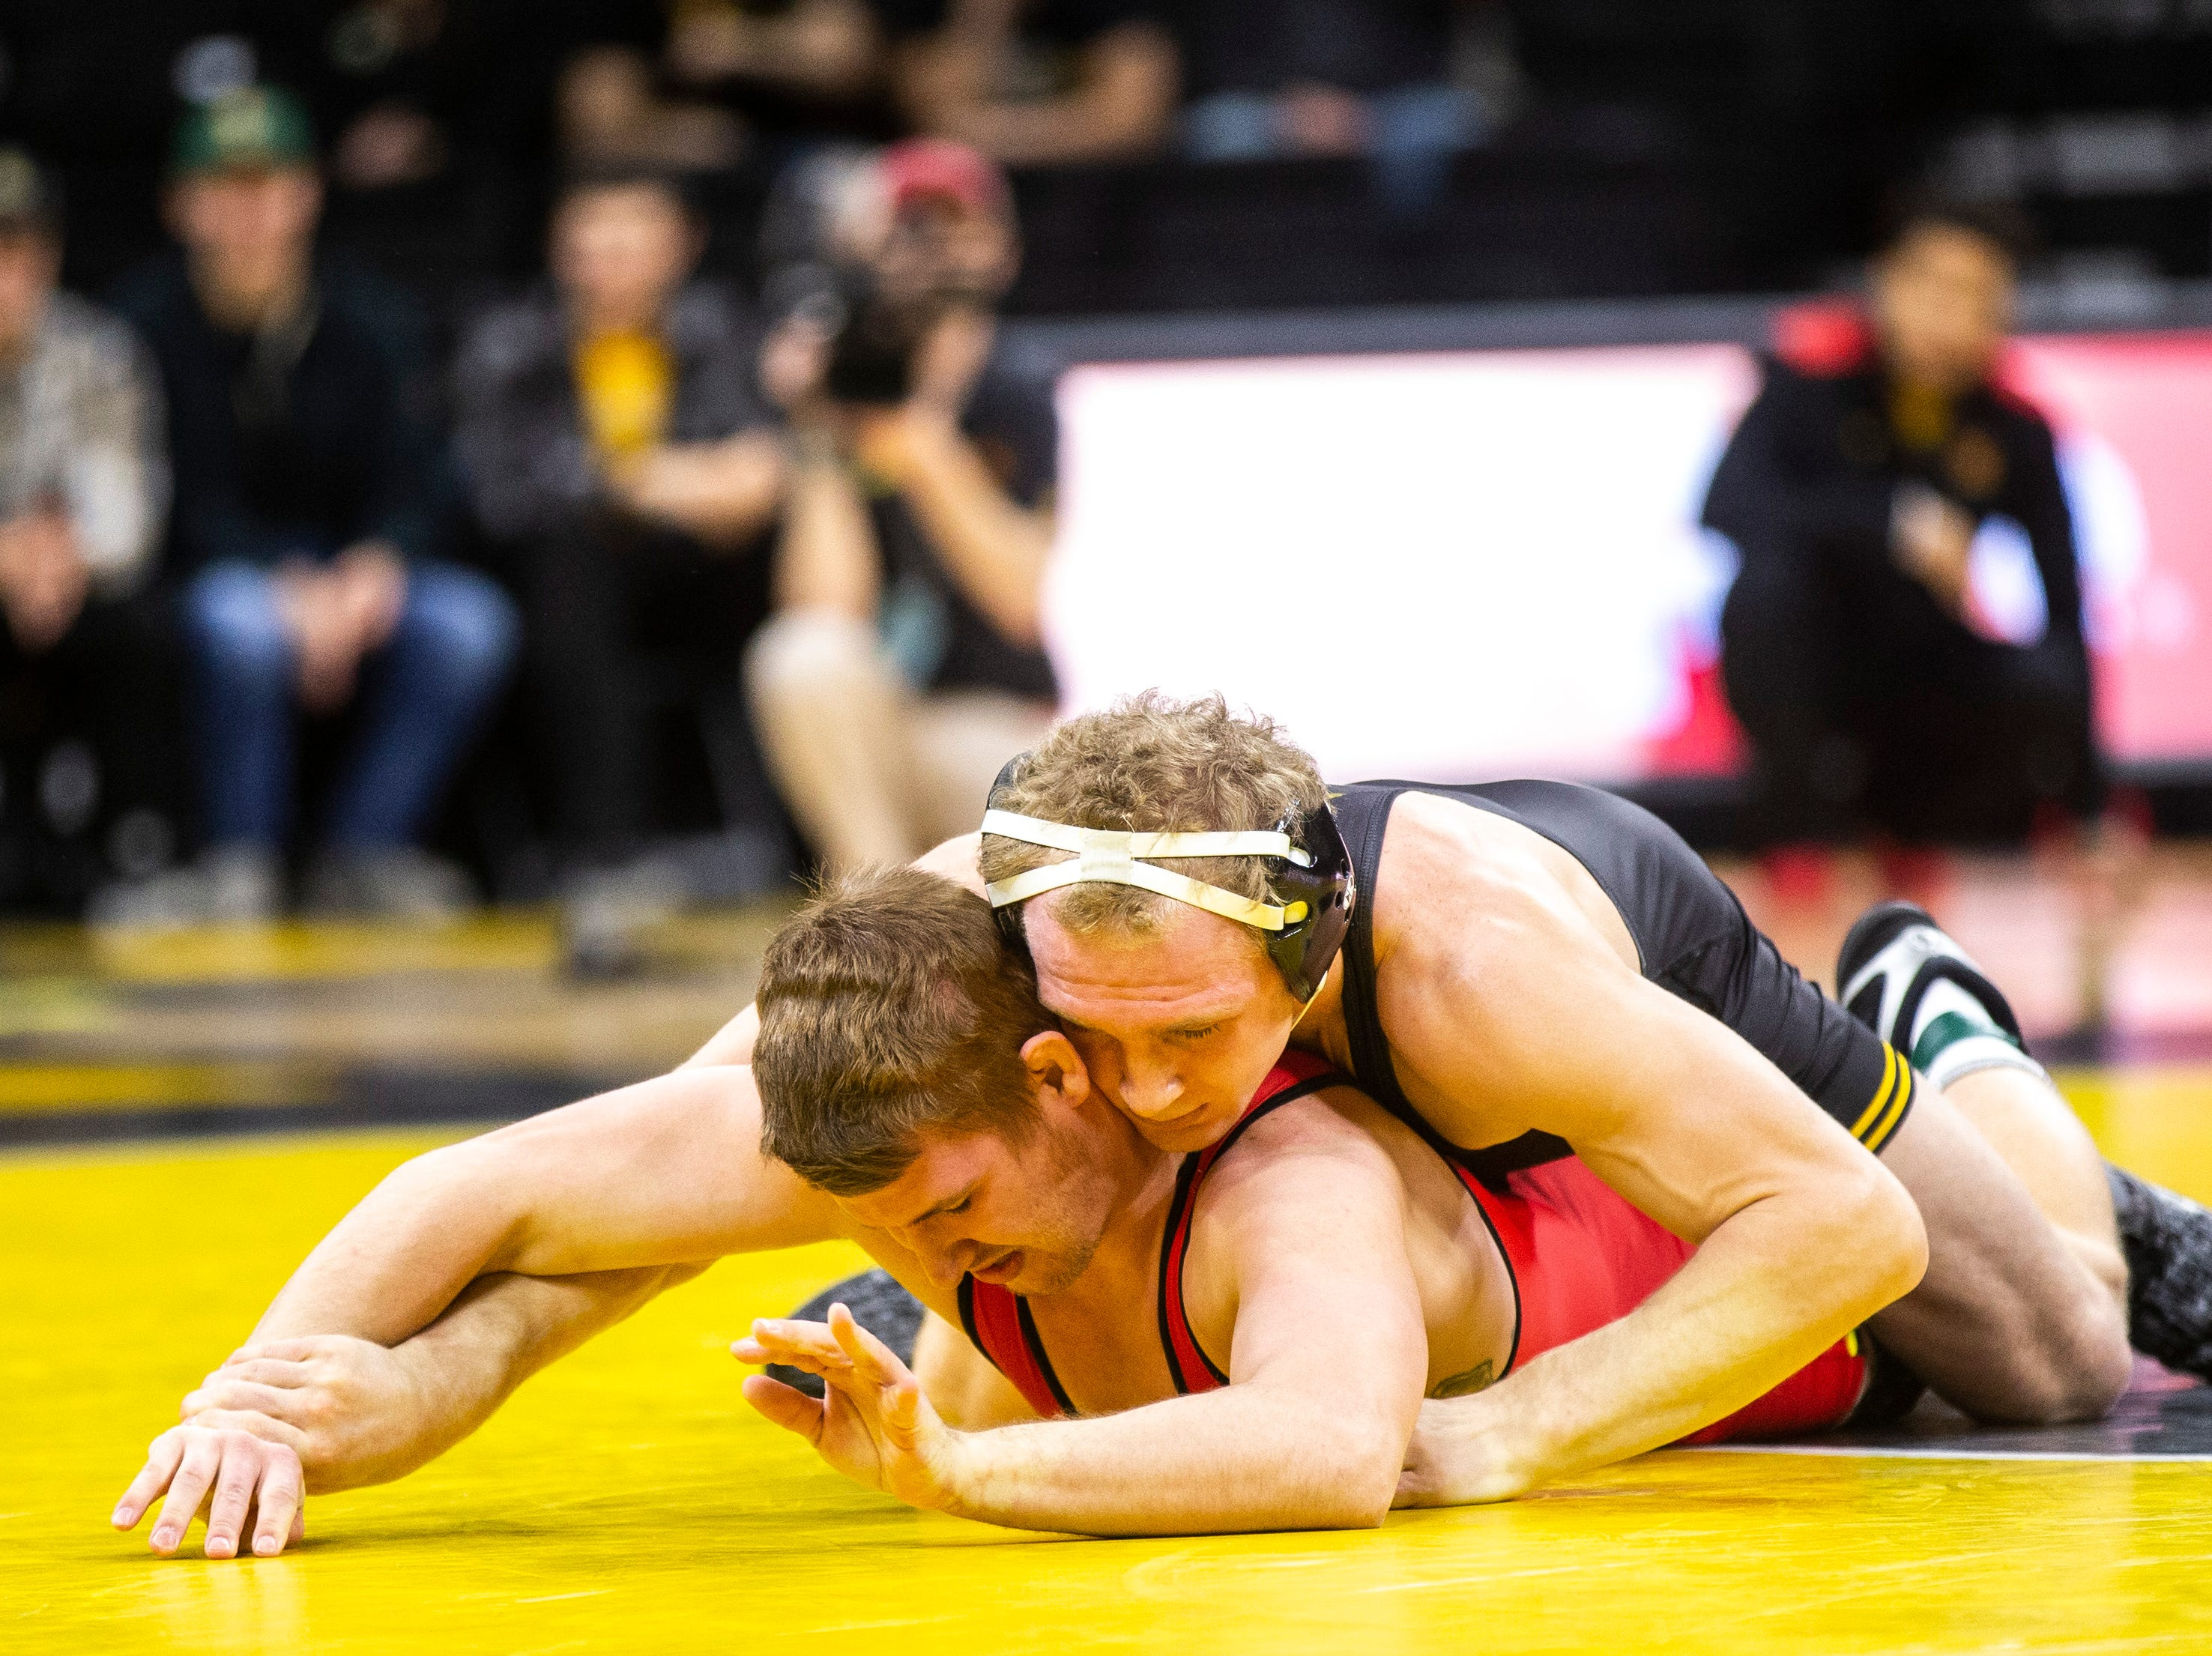 Iowa's Kaleb Young, right, wrestles Maryland's Ryan Diehl at 157 during a NCAA Big Ten Conference wrestling dual on Friday, Feb. 8, 2019 at Carver-Hawkeye Arena in Iowa City, Iowa.